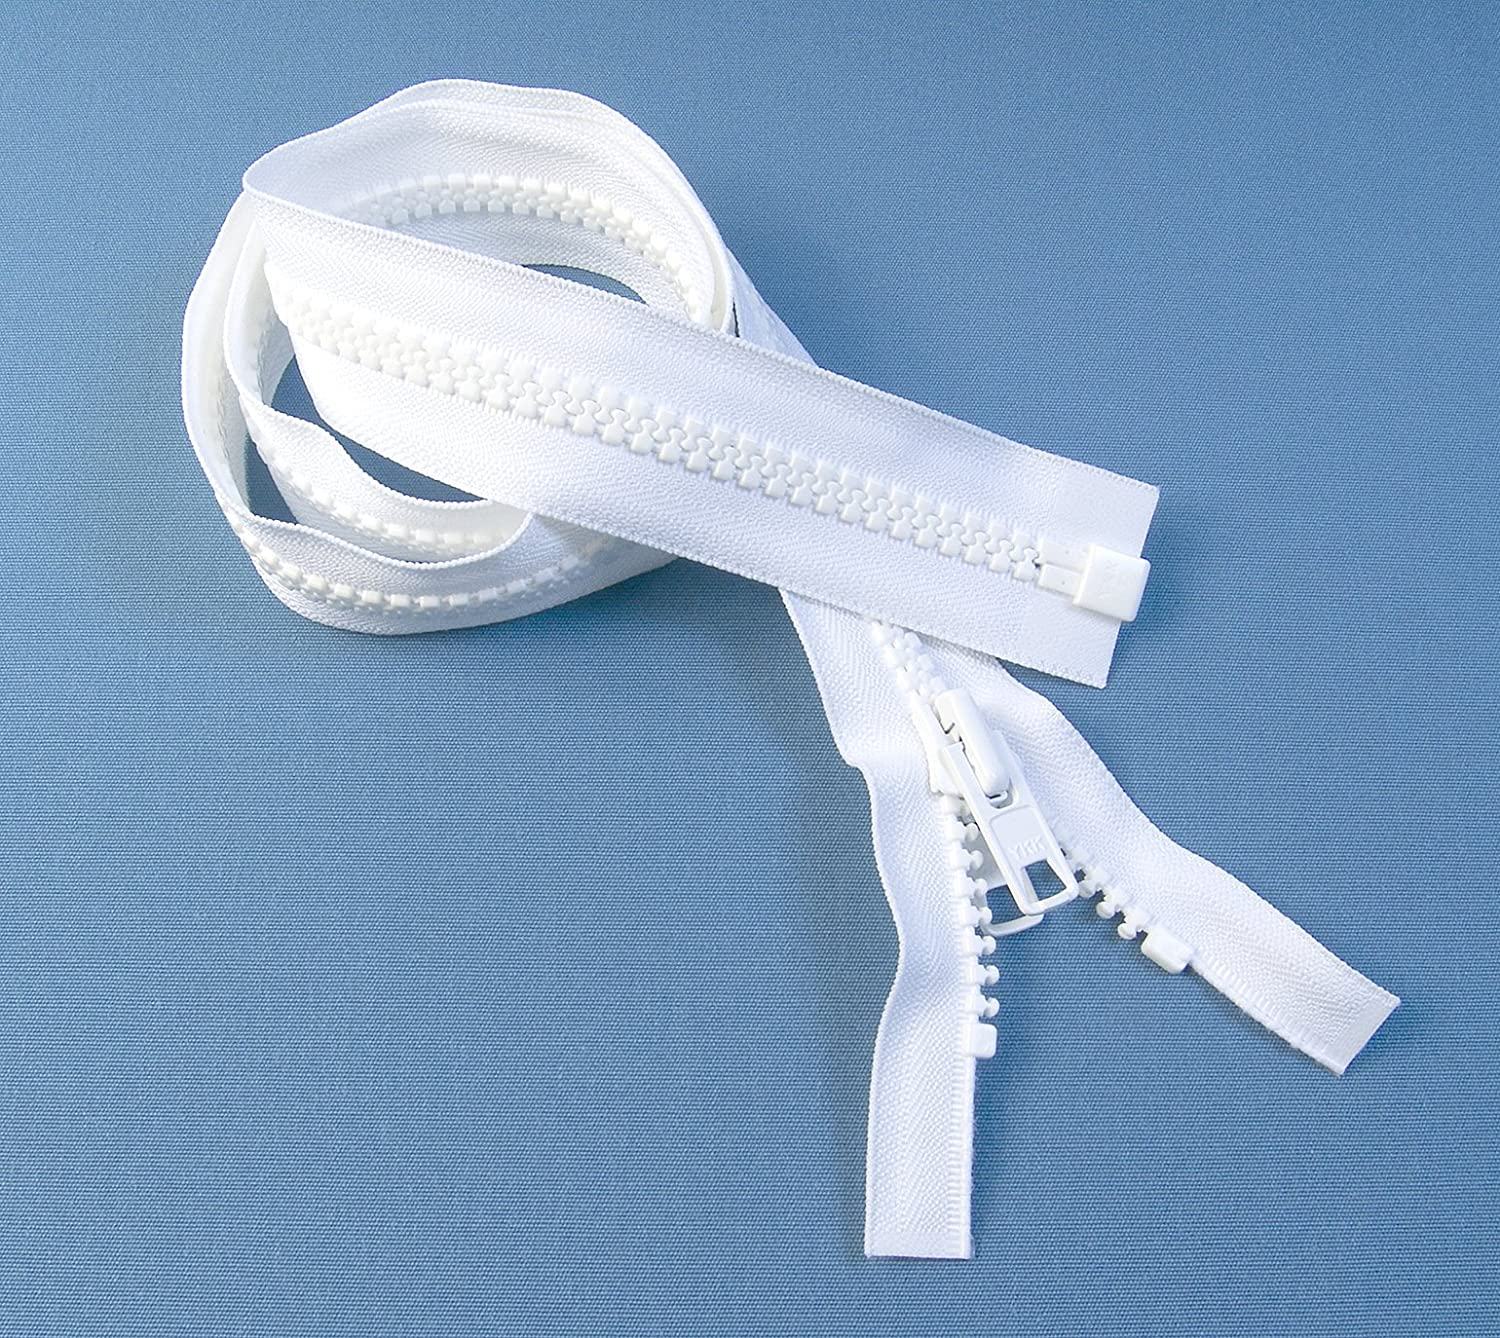 YKK #10 Boat Top Zipper, White 30 Inch, Seperating Double Metal Tab Slider White 30 Inch 30YKKVIS